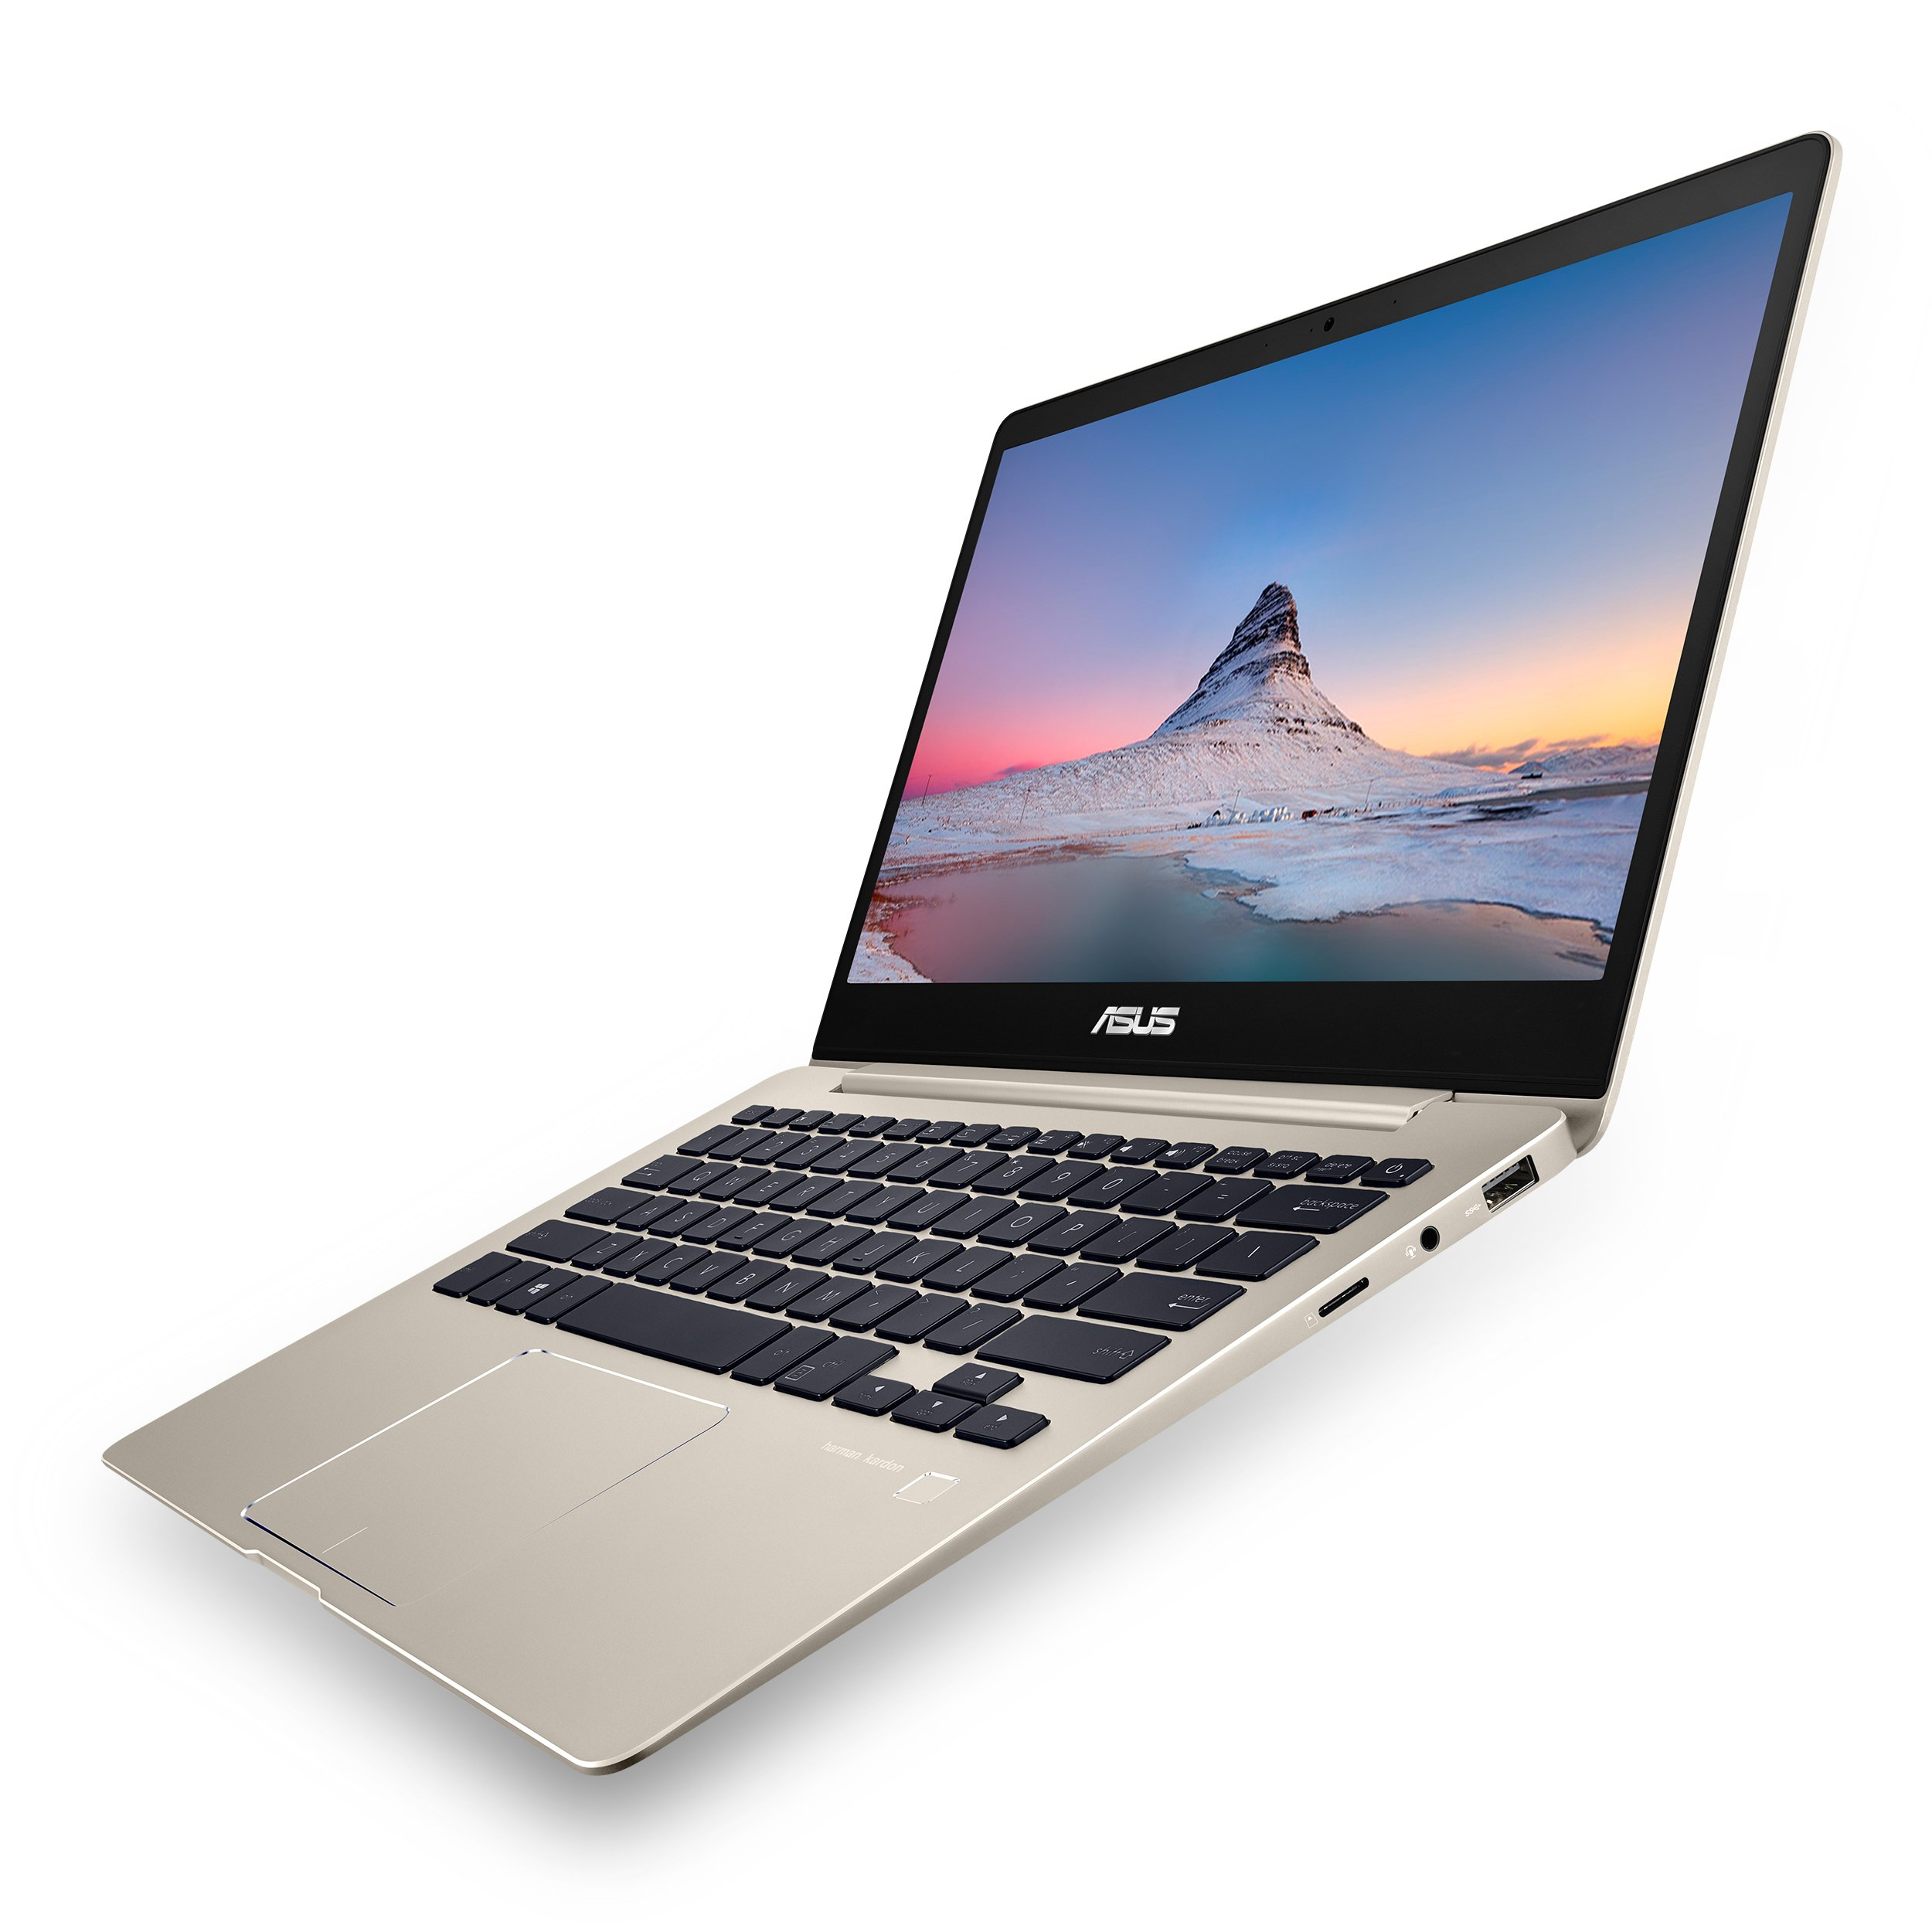 ASUS ZenBook 13 Ultra-Slim Laptop 13.3'' FHD Display, Intel 8th gen Core i5-8250U, 8GB RAM, 256GB M.2 SSD, Win10, Backlit KB, FP, Icicle Gold, UX331UA-AS51 by ASUS (Image #5)